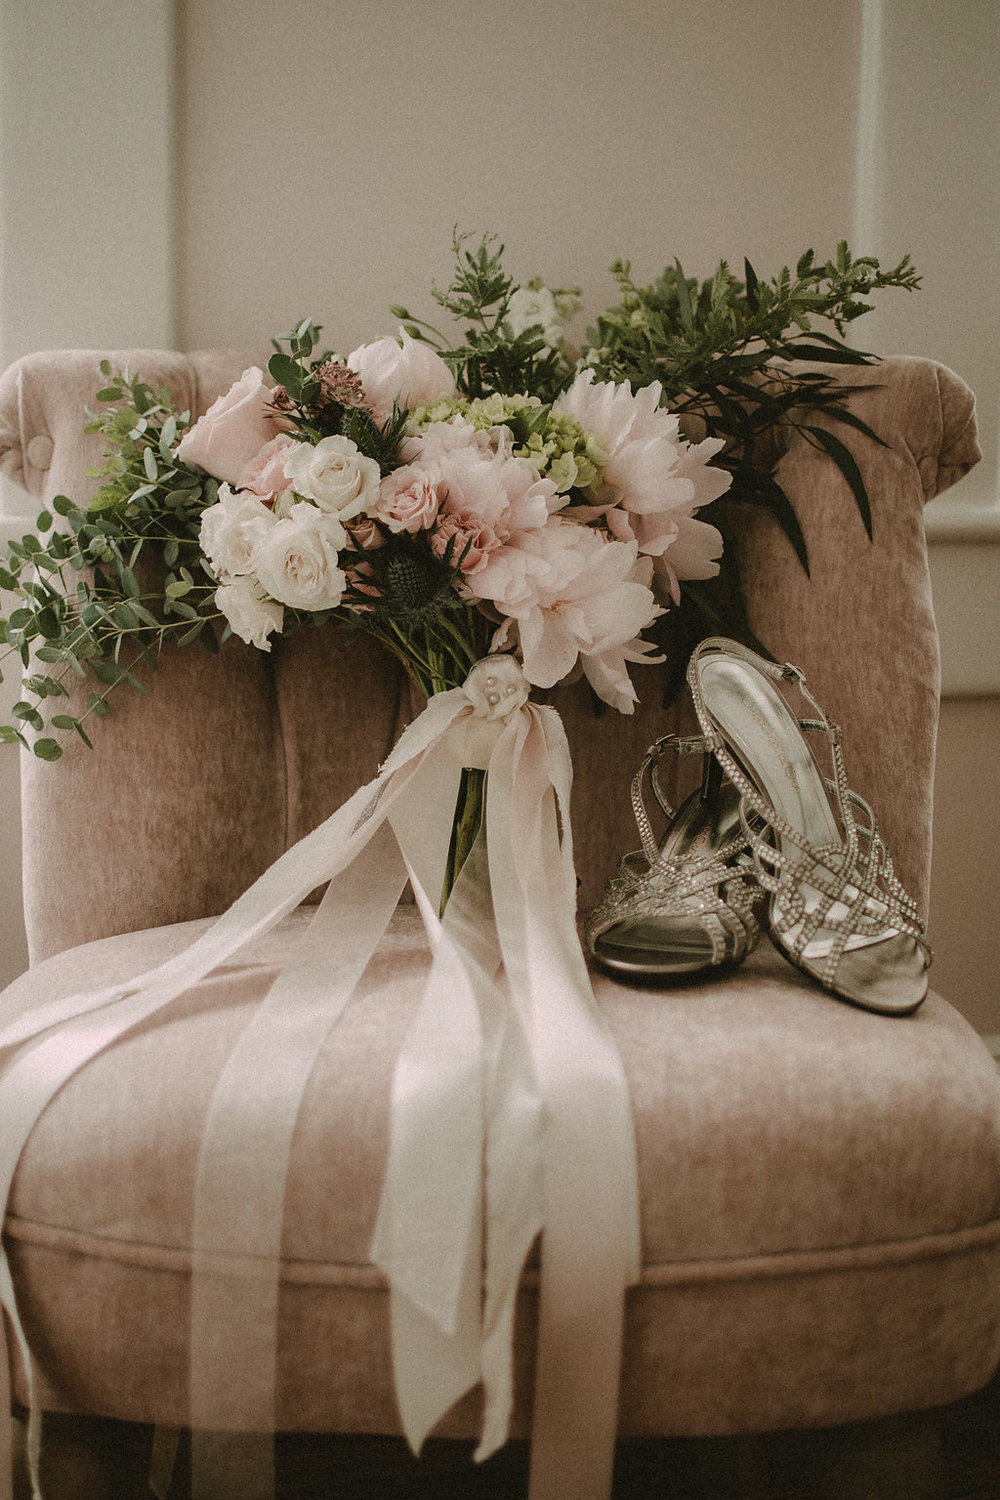 Bouquet and wedding shoes sitting on chair